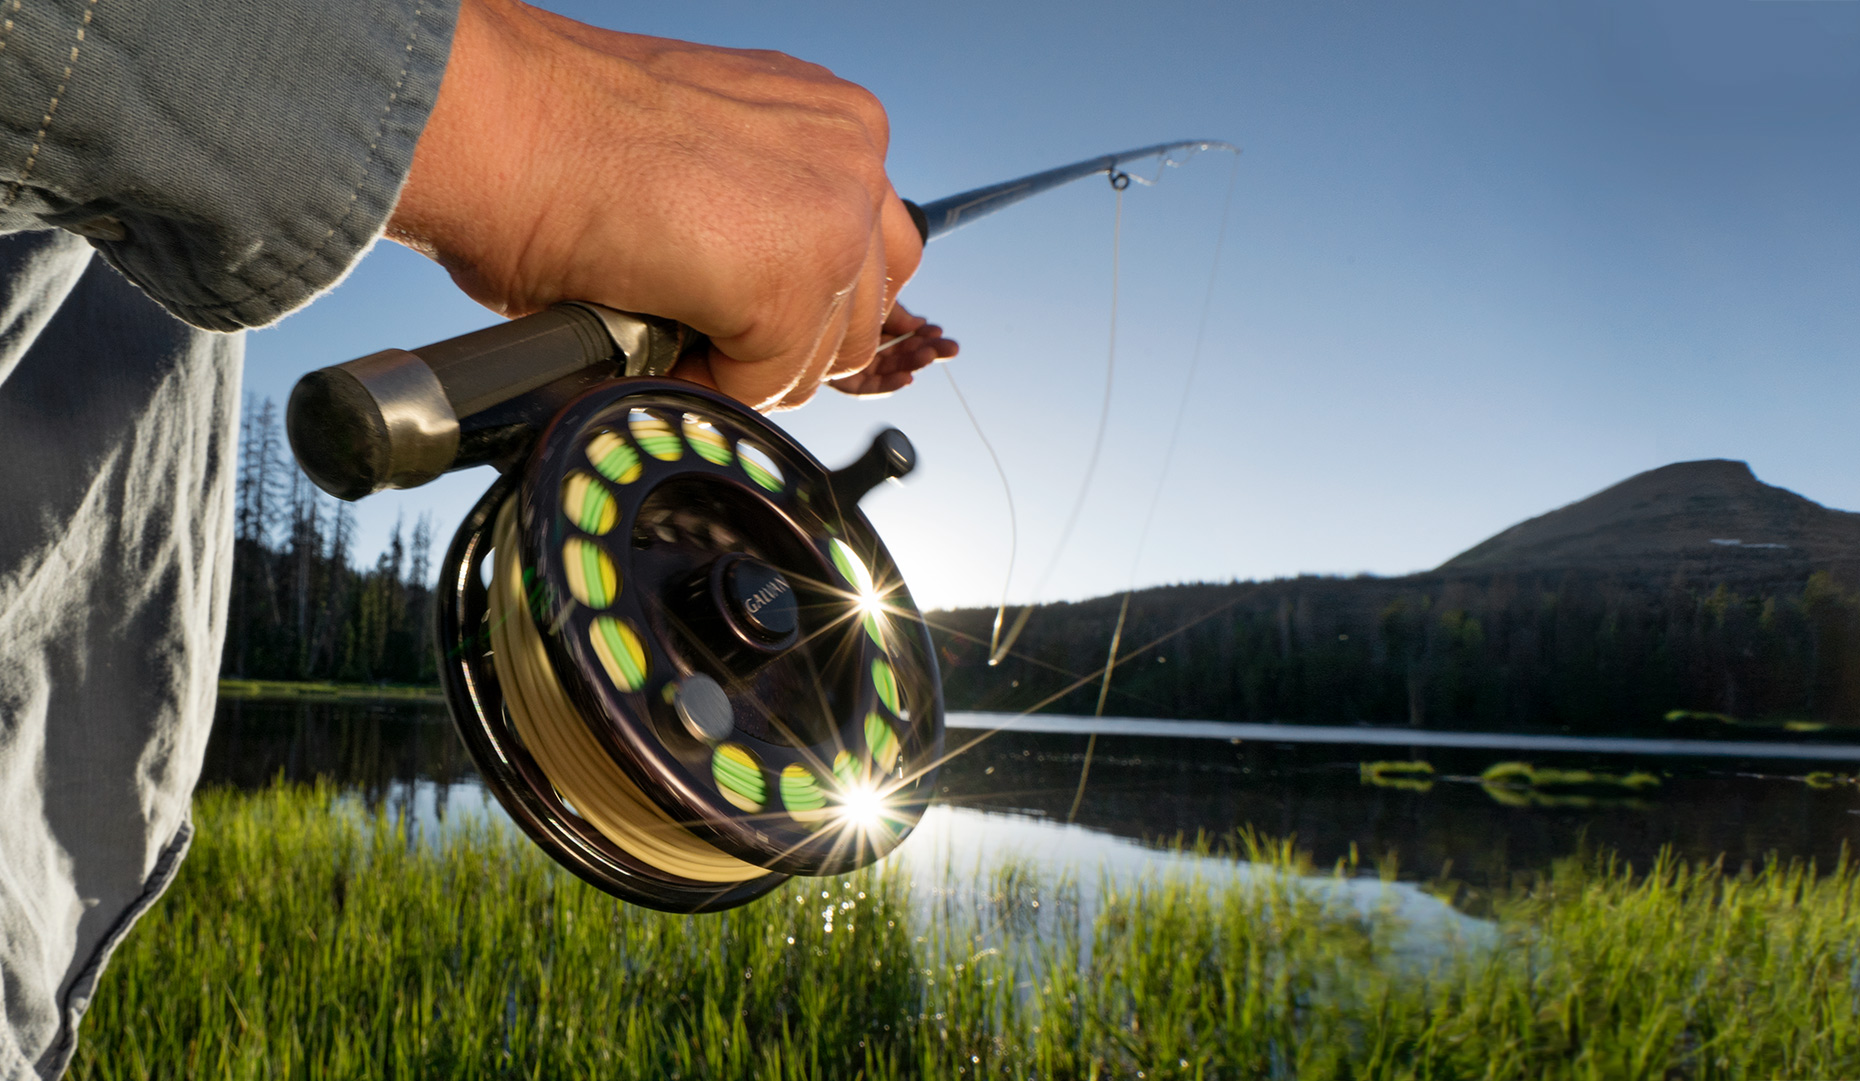 Lane_Peters_Multimedia_Fly-Fishing_Ben-Waymant.jpg